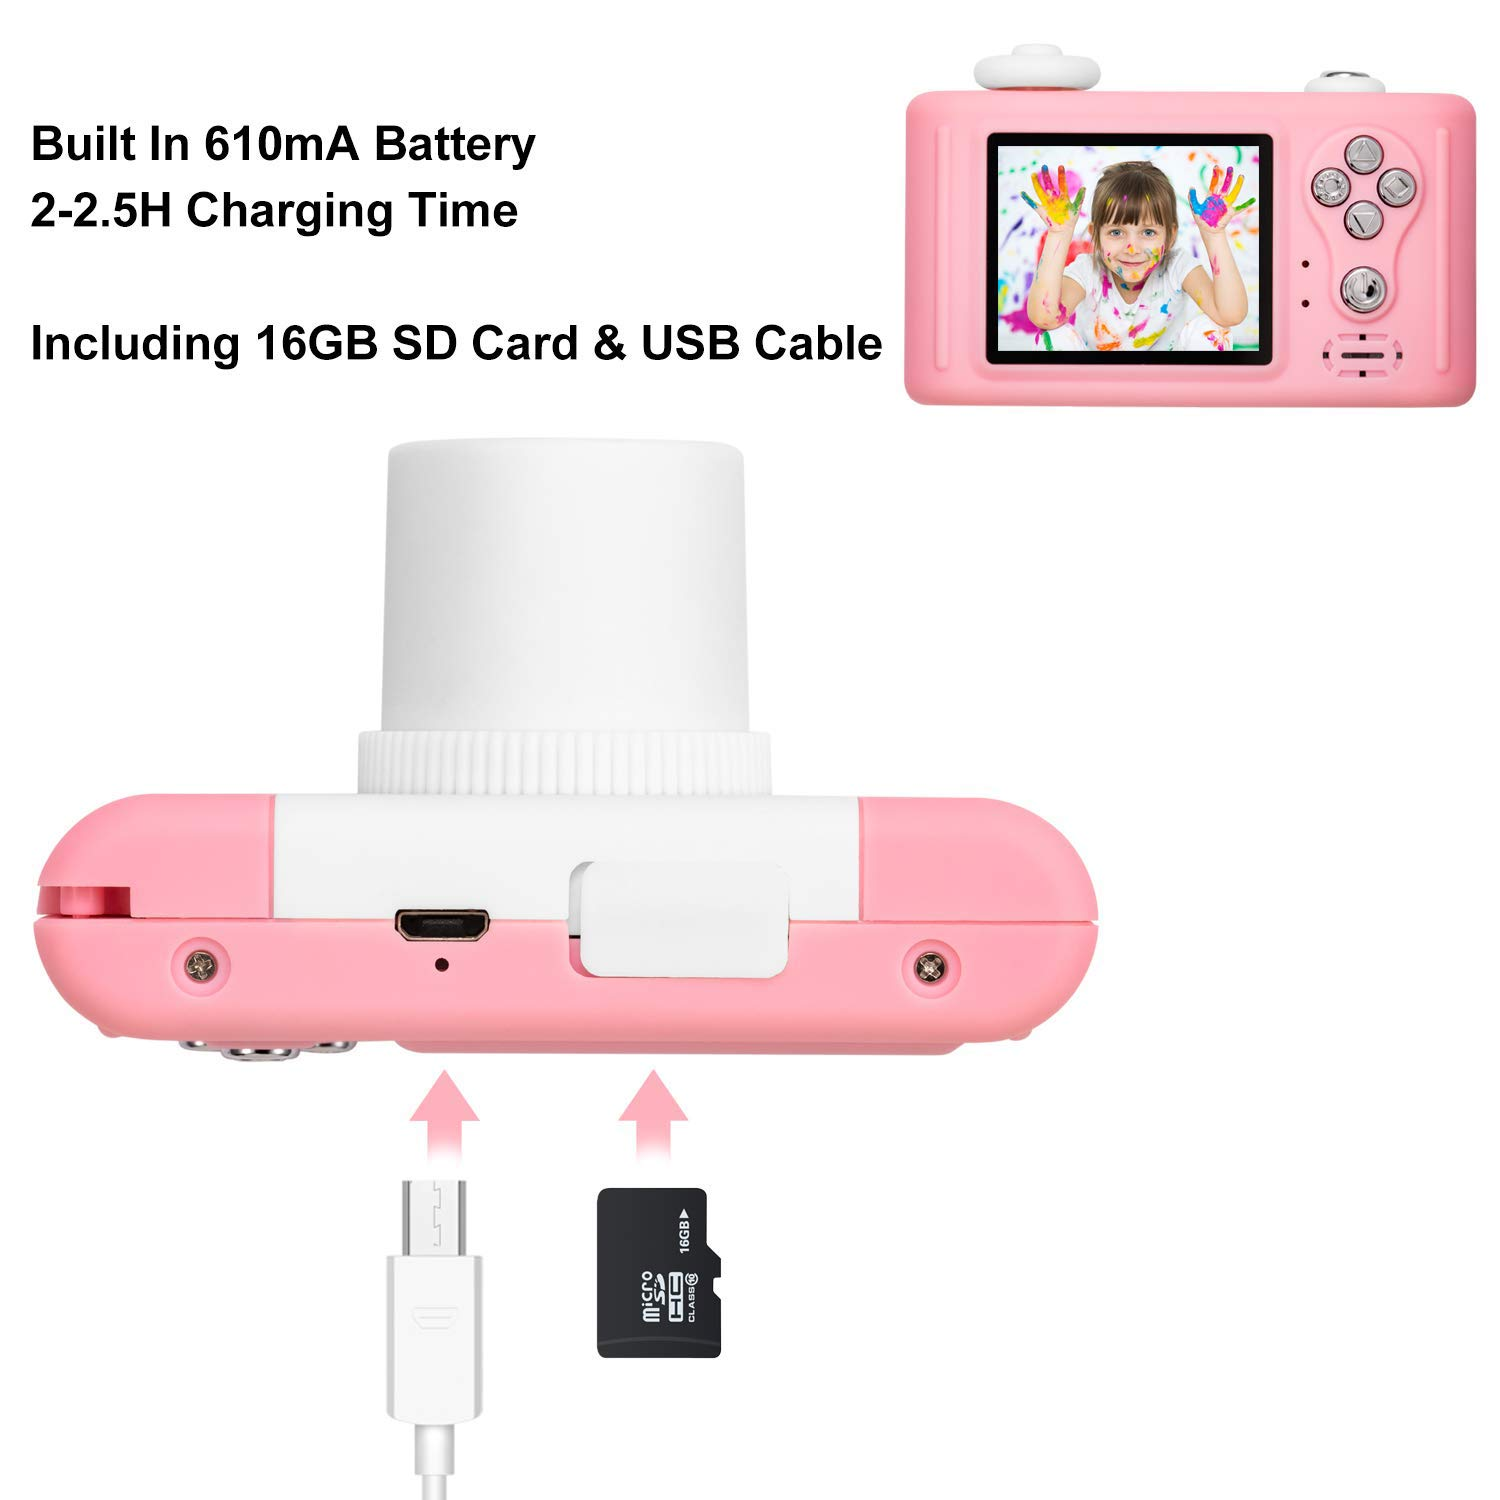 Abdtech Kids Camera Toys for 4-8 Year Old Girls, Rechargeable Children Digital Cameras with Rabbit Cover for Girl Boys Shockproof 8MP Mini Cam with 16G SD Card Best Idea Birthday Party Gift (Pink) by Abdtech (Image #4)